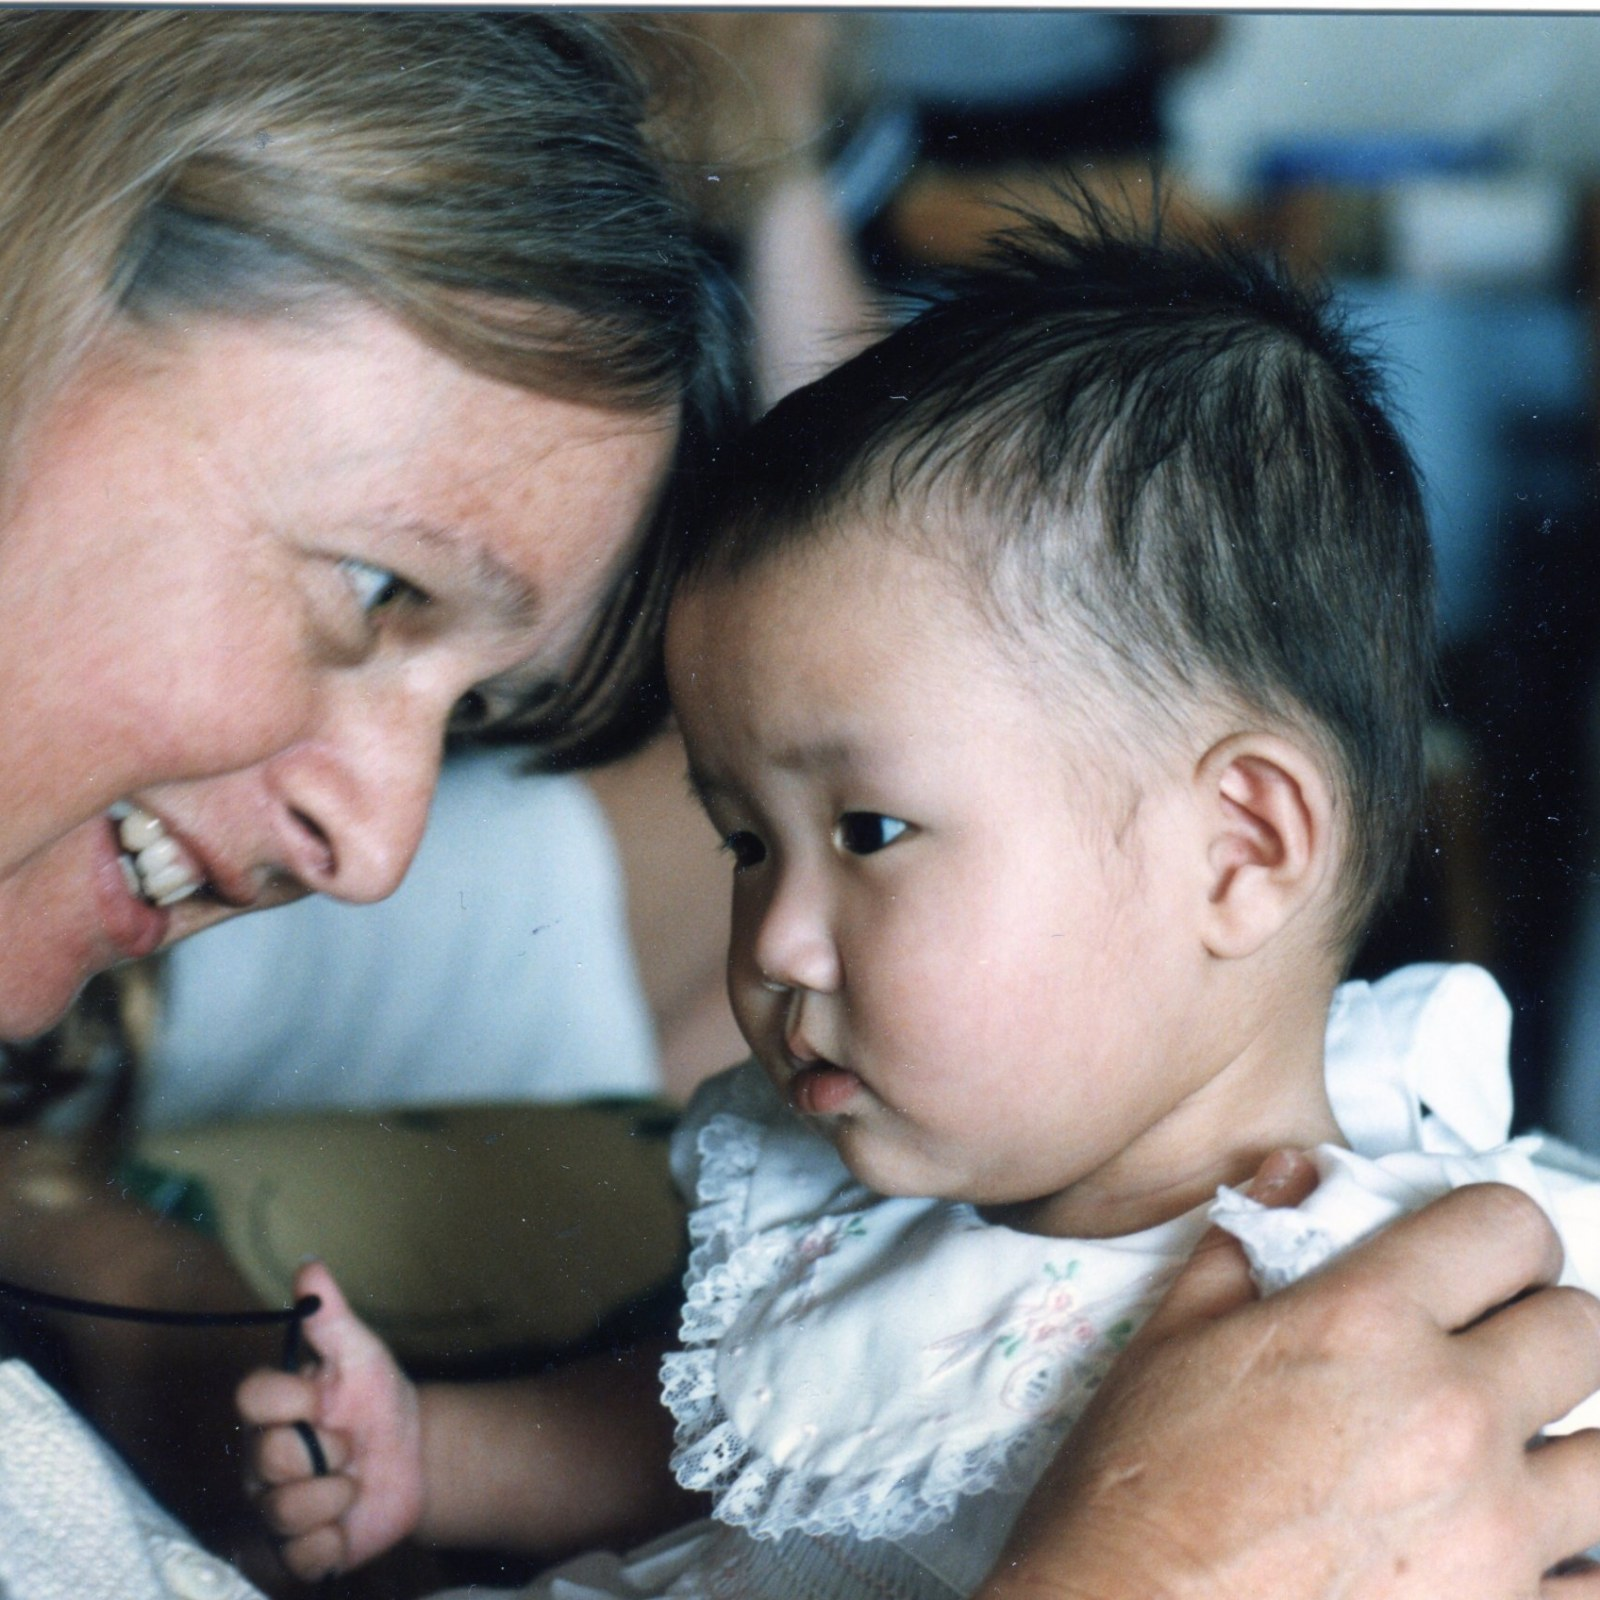 China's One-Child Policy and American Adoptees